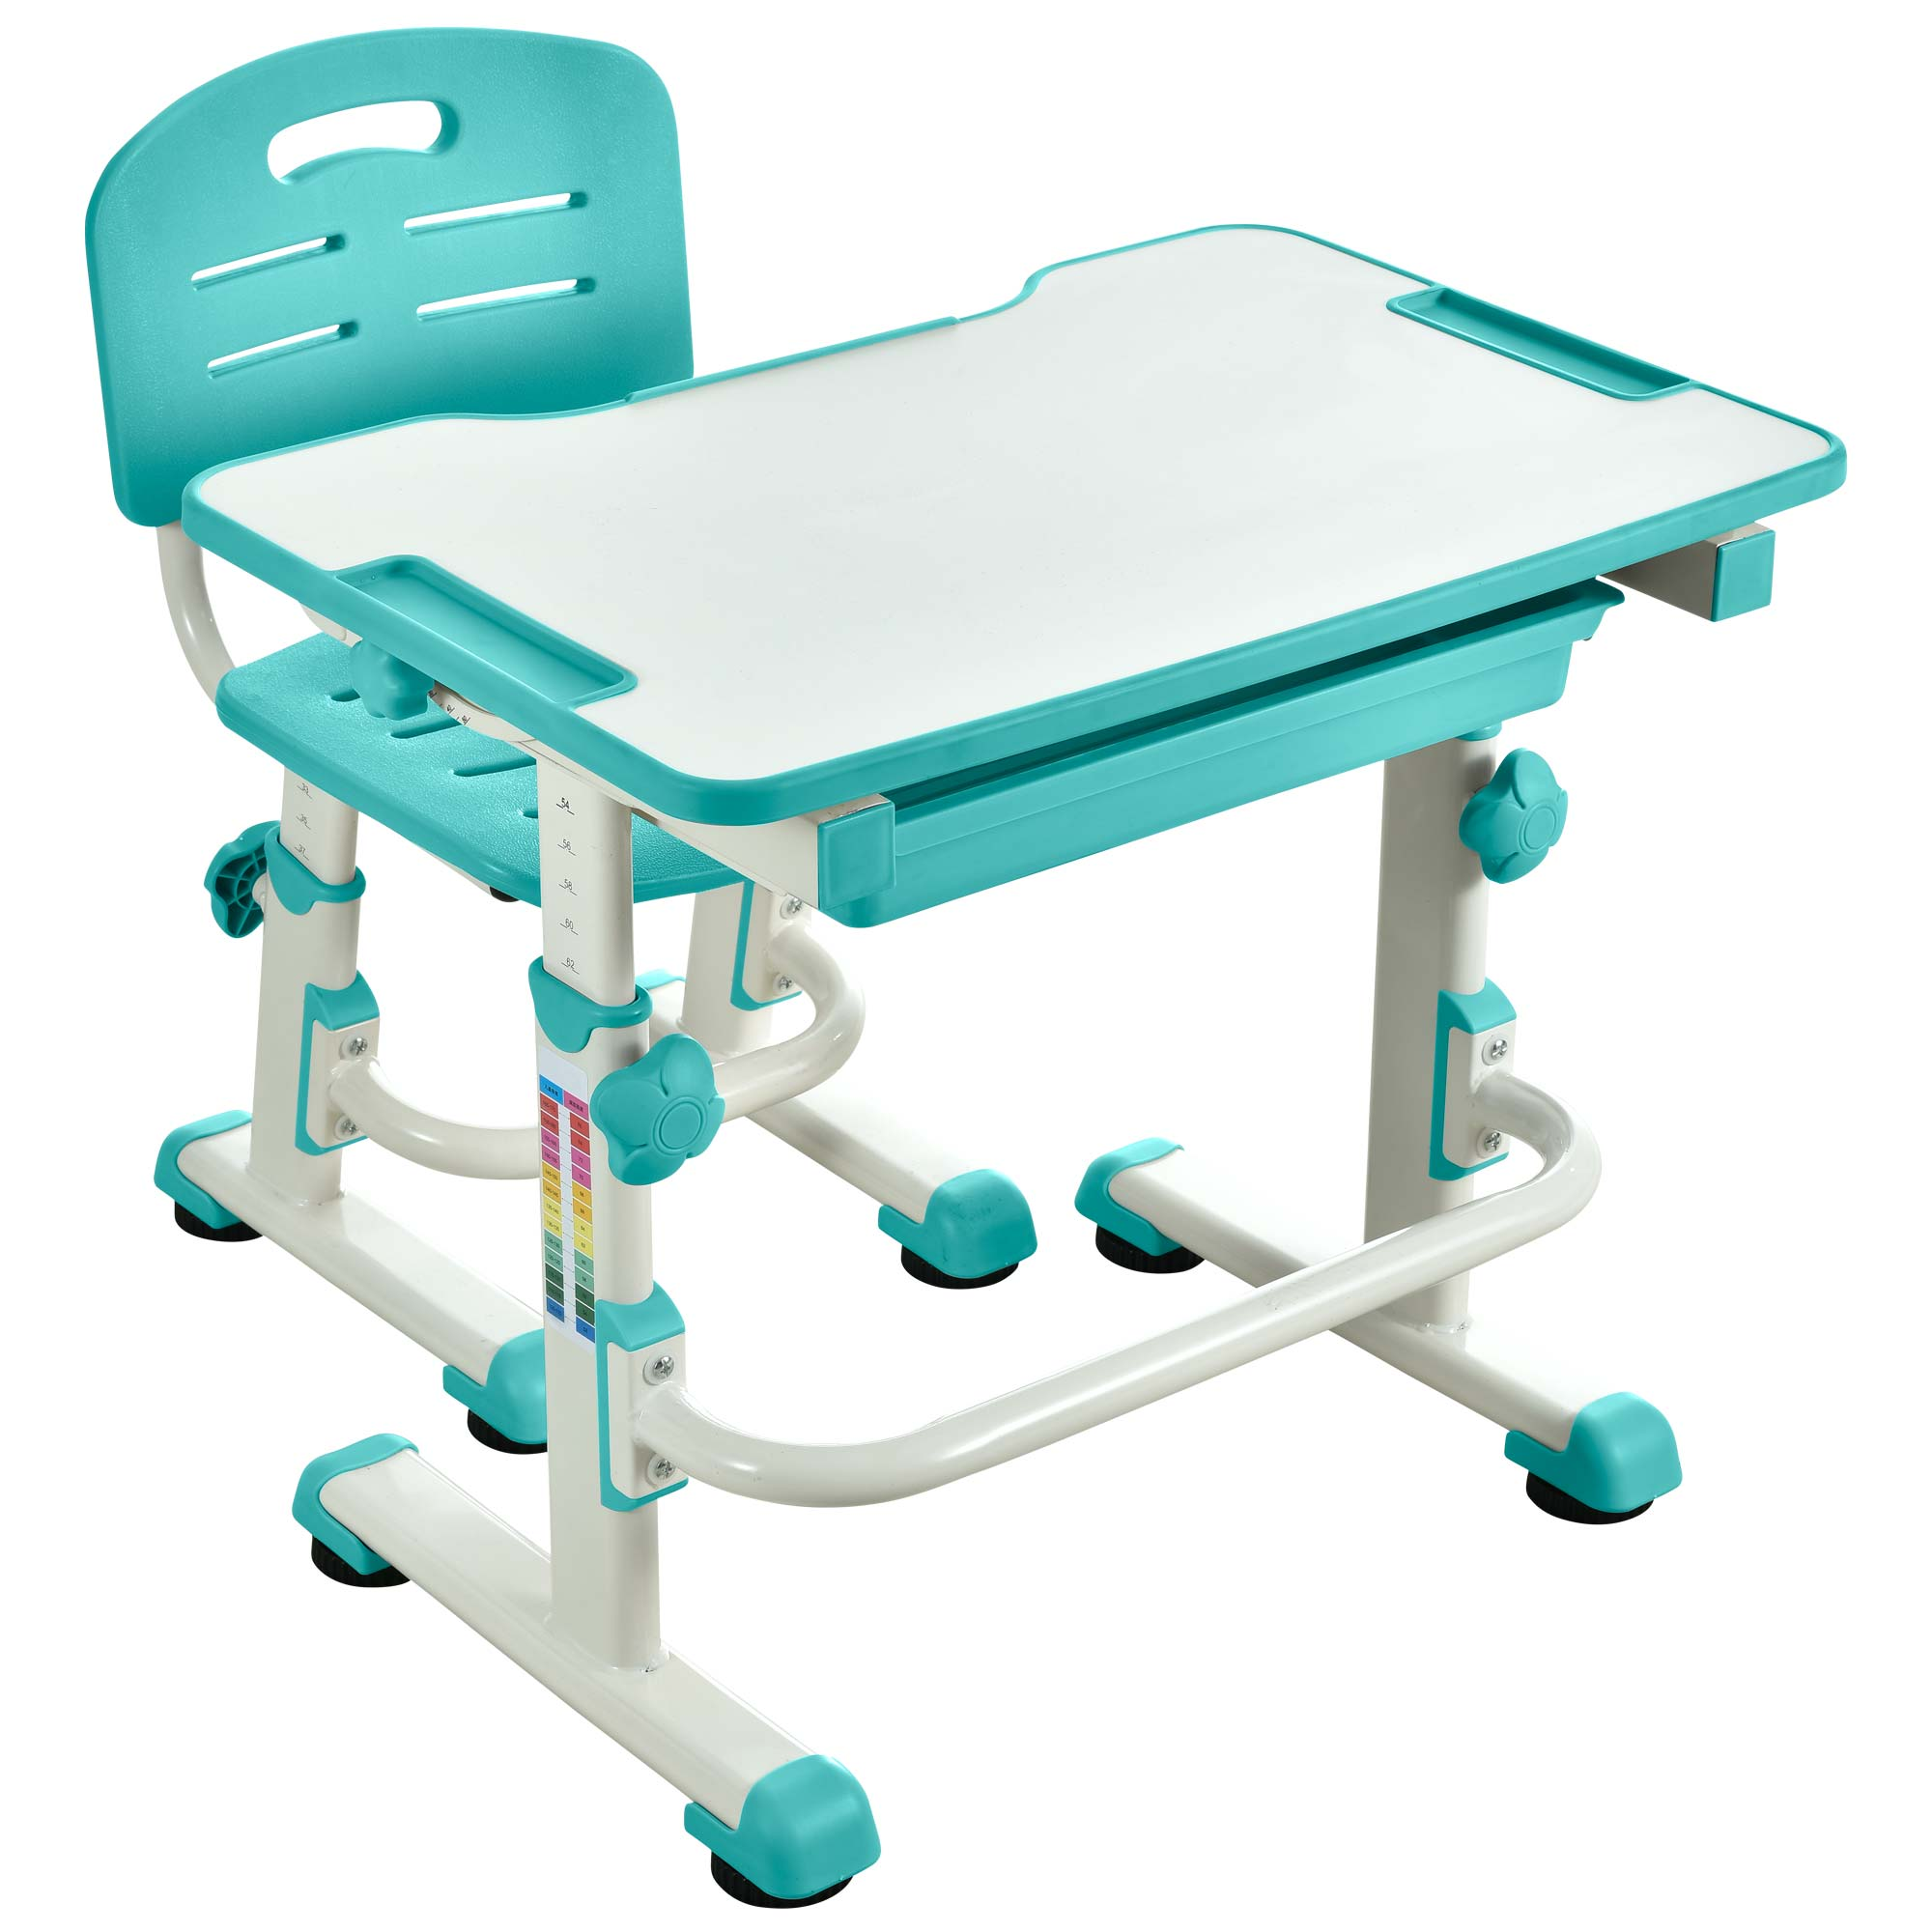 adjustable-kids-desk-for-study-table-for-children-ergonomic-children-learning-table-green-desk-09